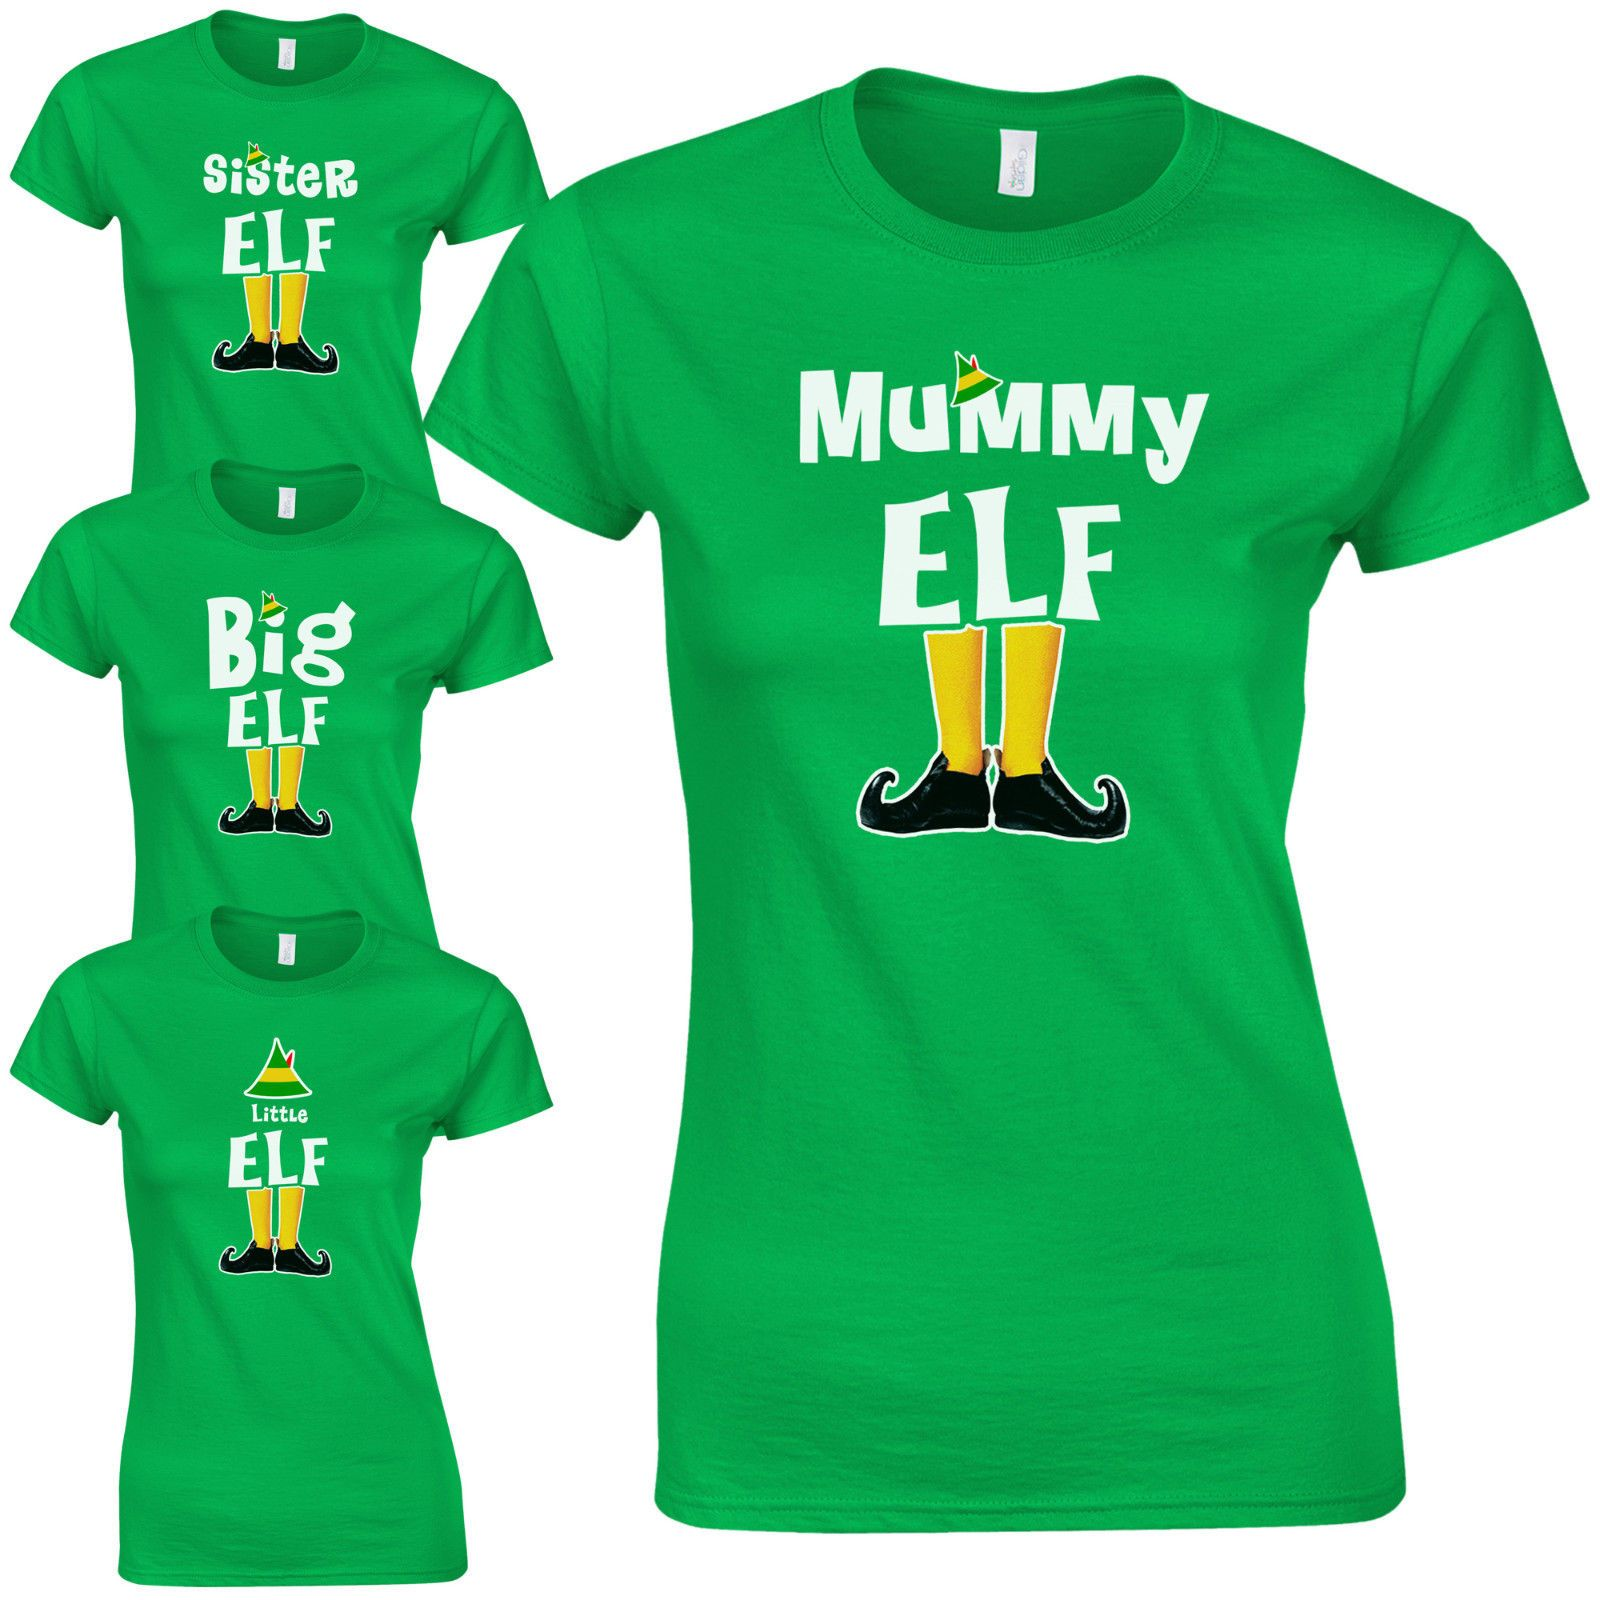 dbdad0ef2b8c Elf Family Ladies Fitted T-Shirt - Funny Cute Christmas Pyjama PJ s Gift Top